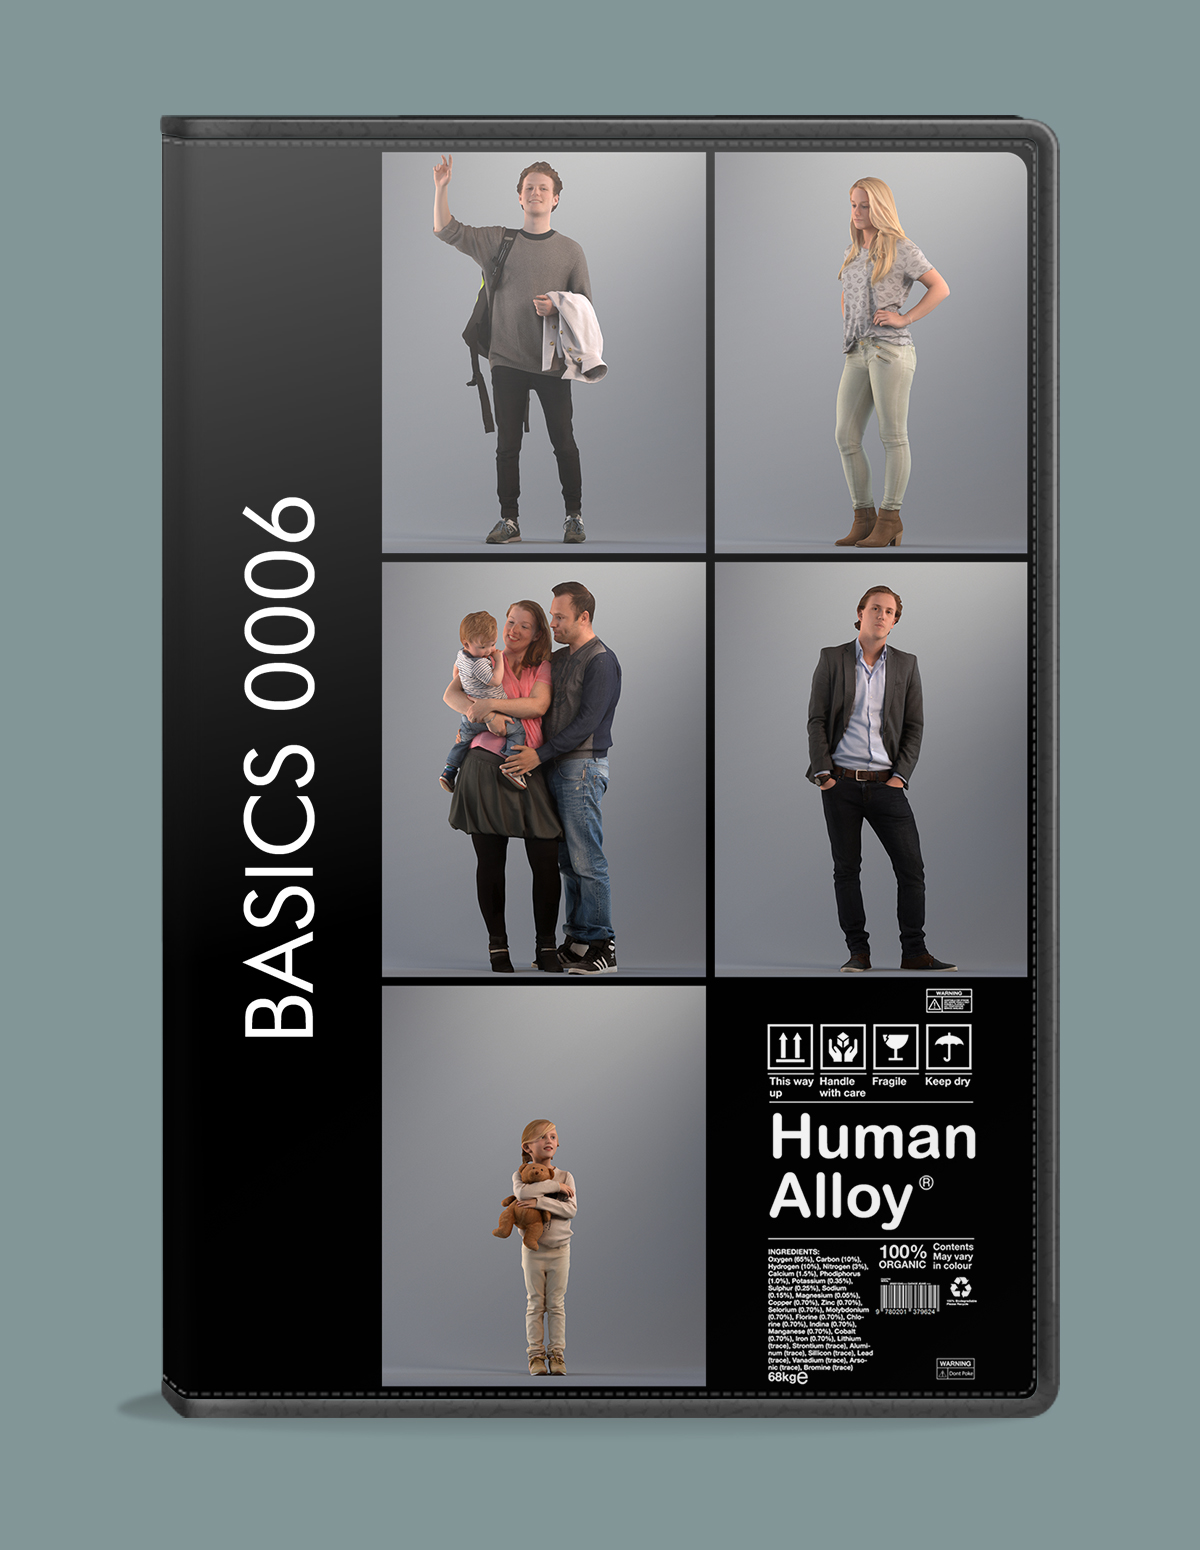 Human Alloy Basics 0006